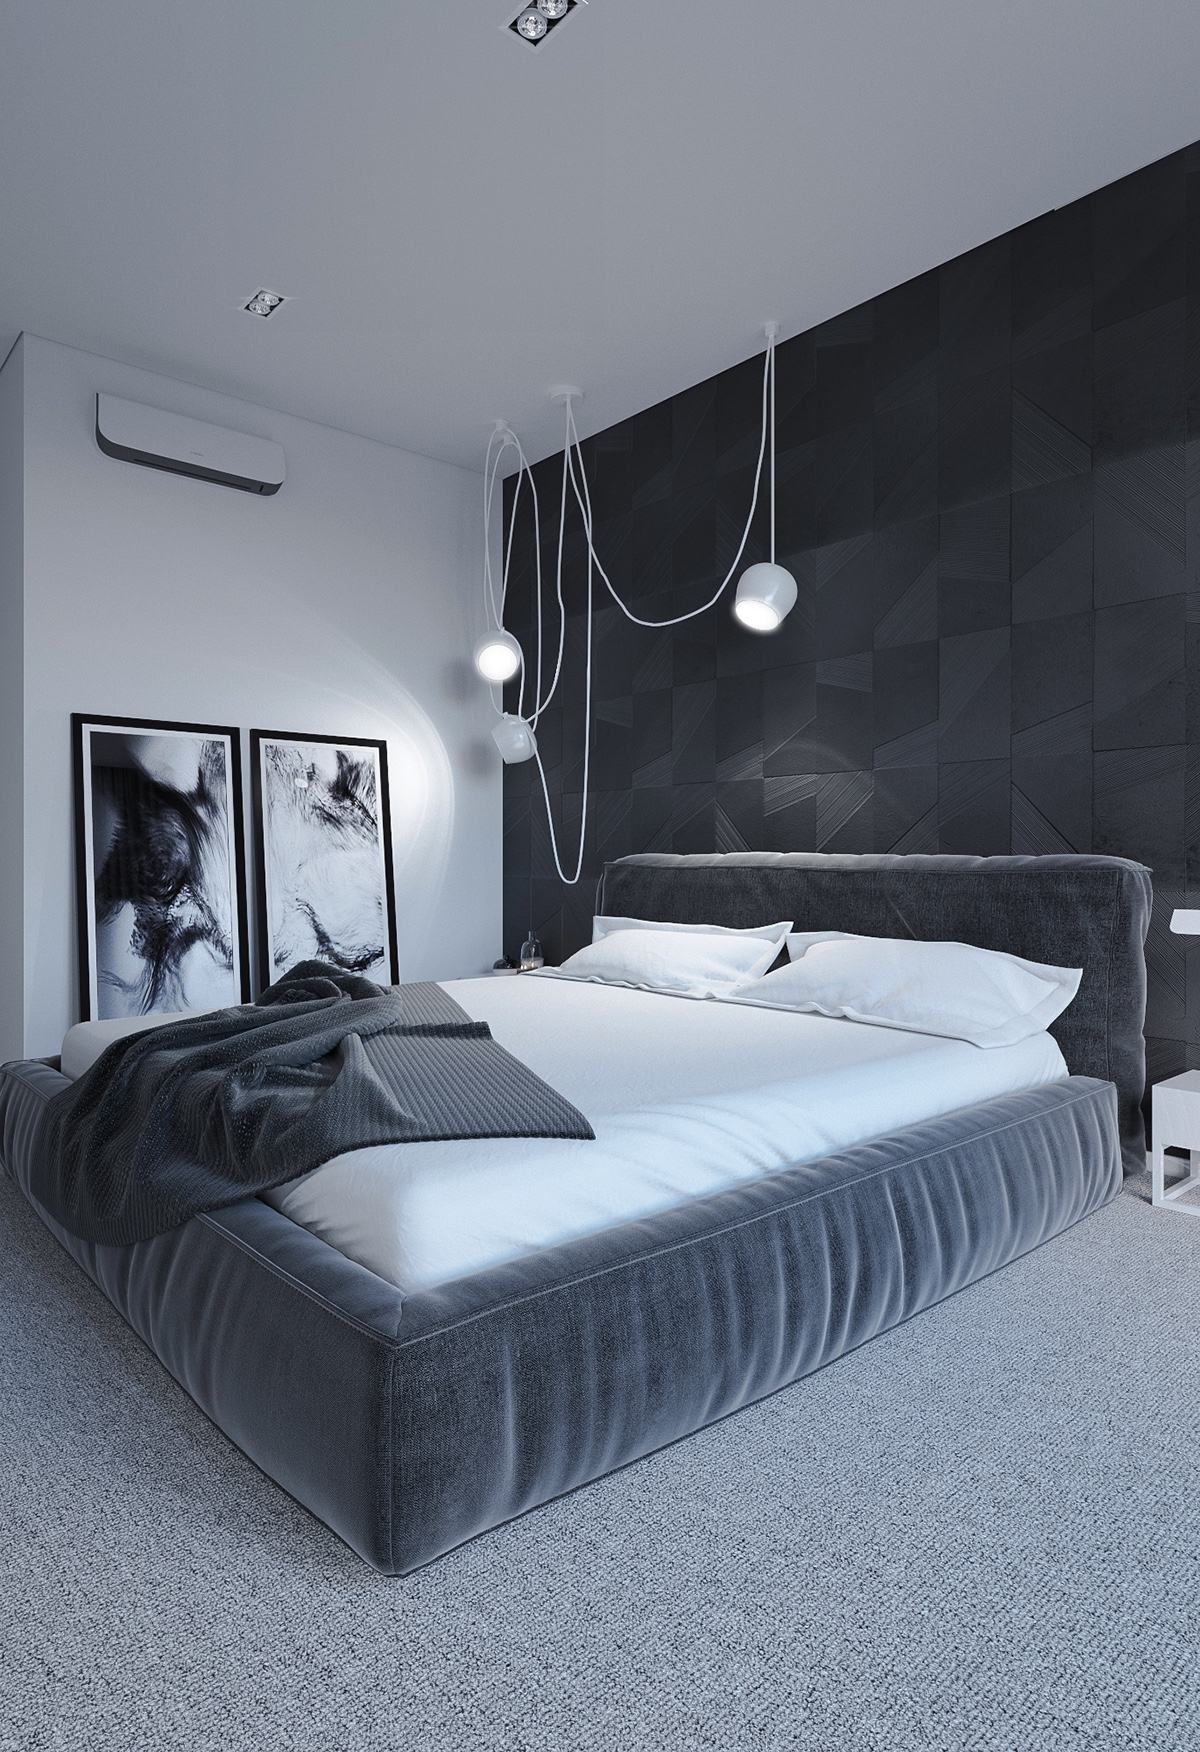 bedroom should room design choose black decor reasons interiordesign white and you